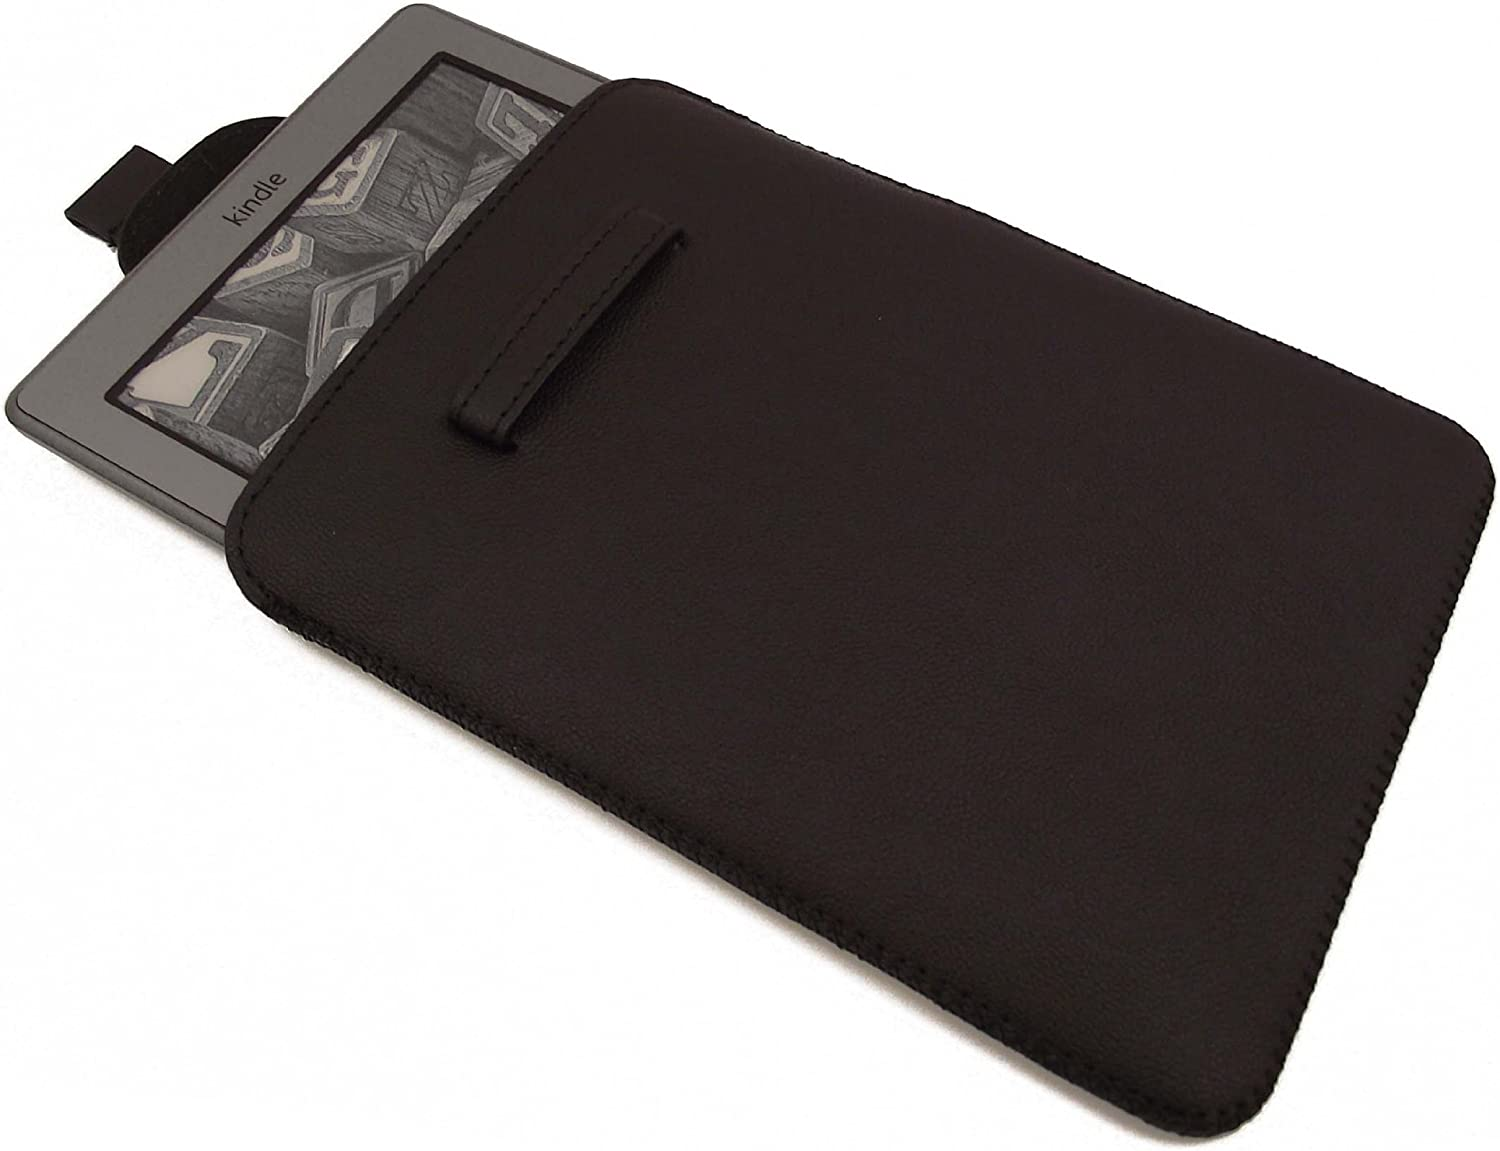 ORZLY Slip Pouch Case for Amazon KINDLE - BLACK Tablet Sleeve Style Cover Pouch from Orzly designed specifically for use with the 6 inch Amazon Kindle 4 e-Reader